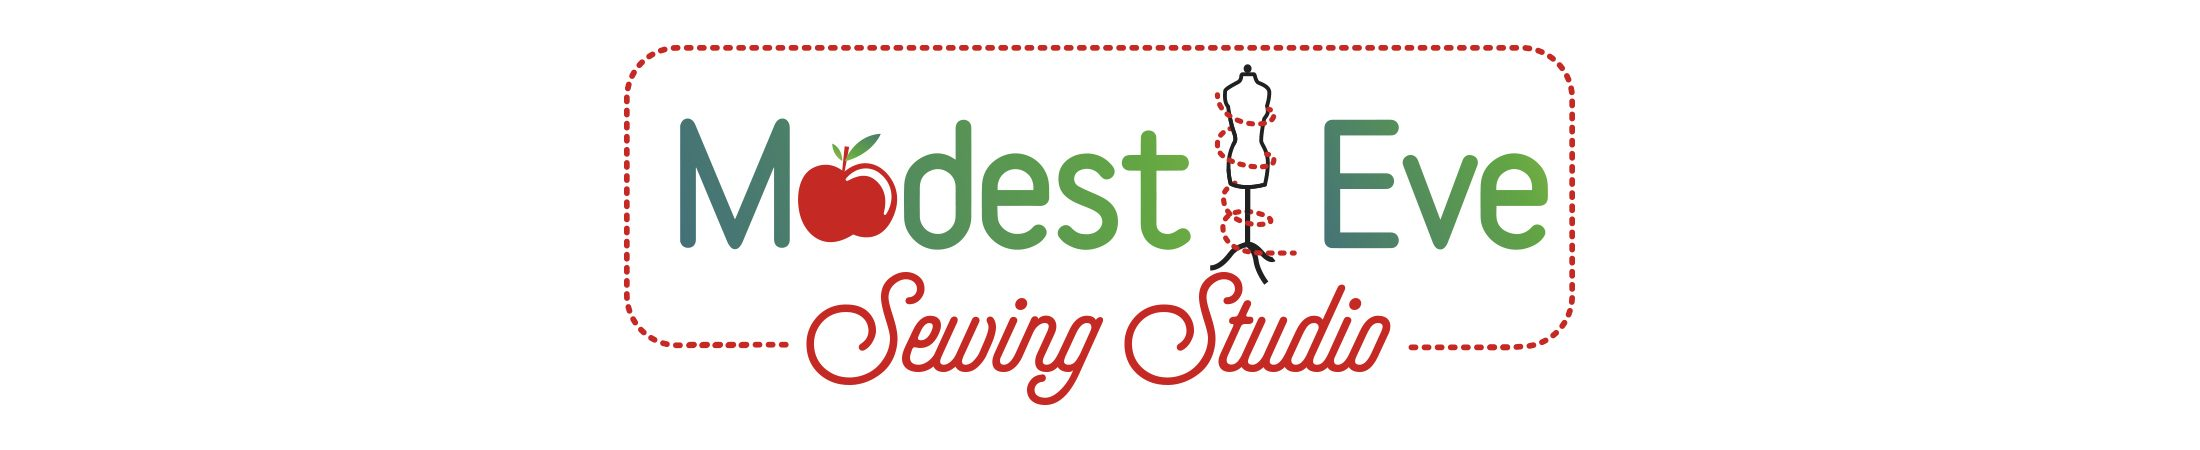 Modest Eve Sewing Studio